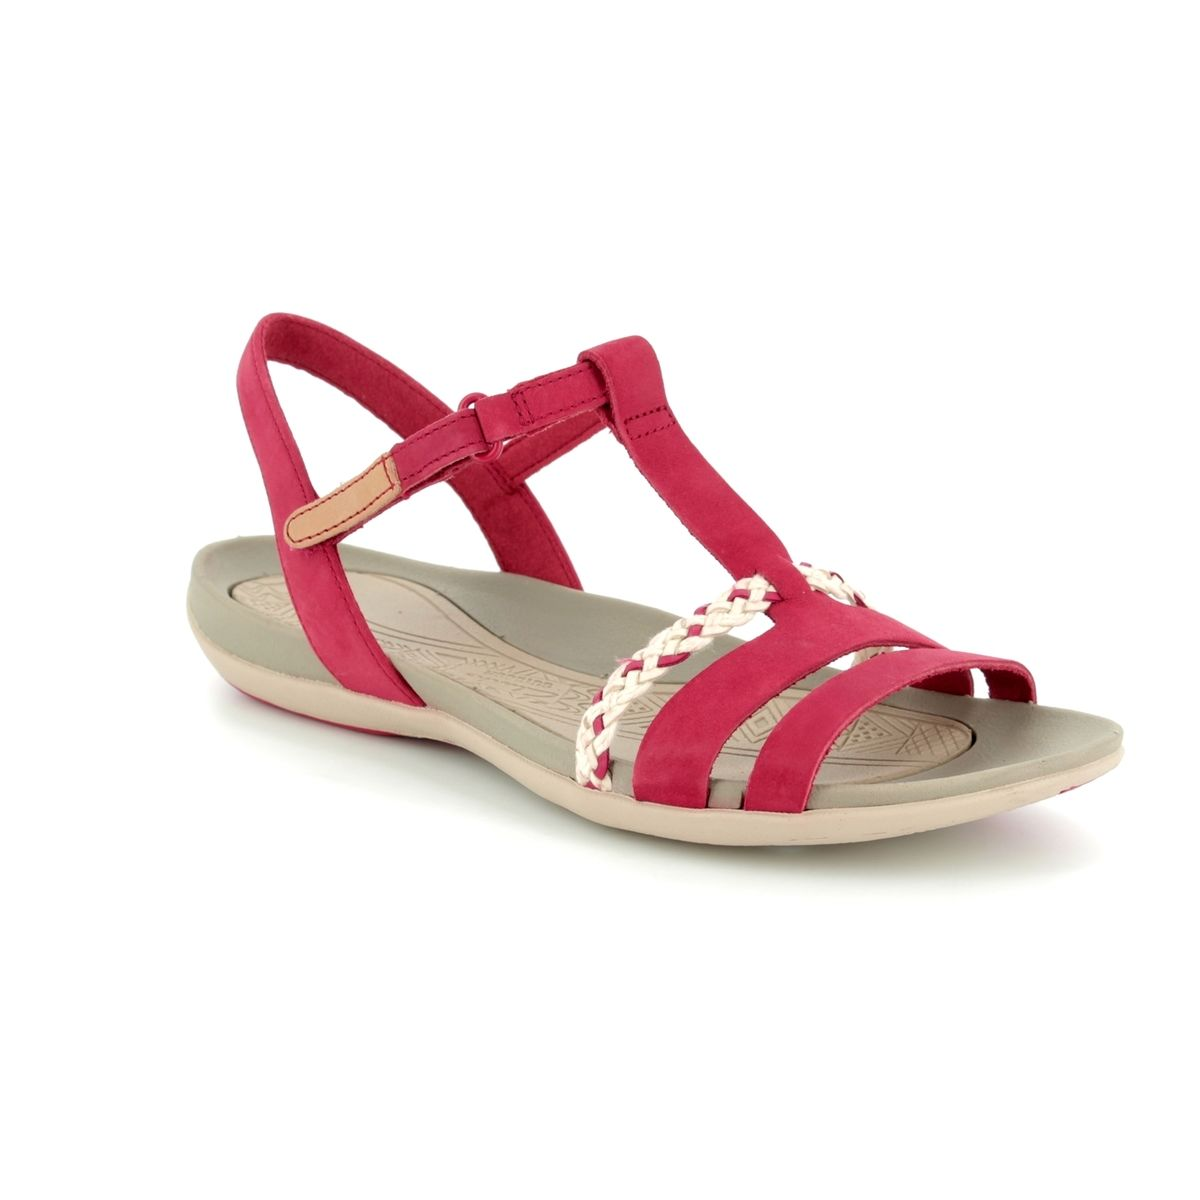 81da1caa3b13 Clarks Sandals - Red - 2389 24D TEALITE GRACE